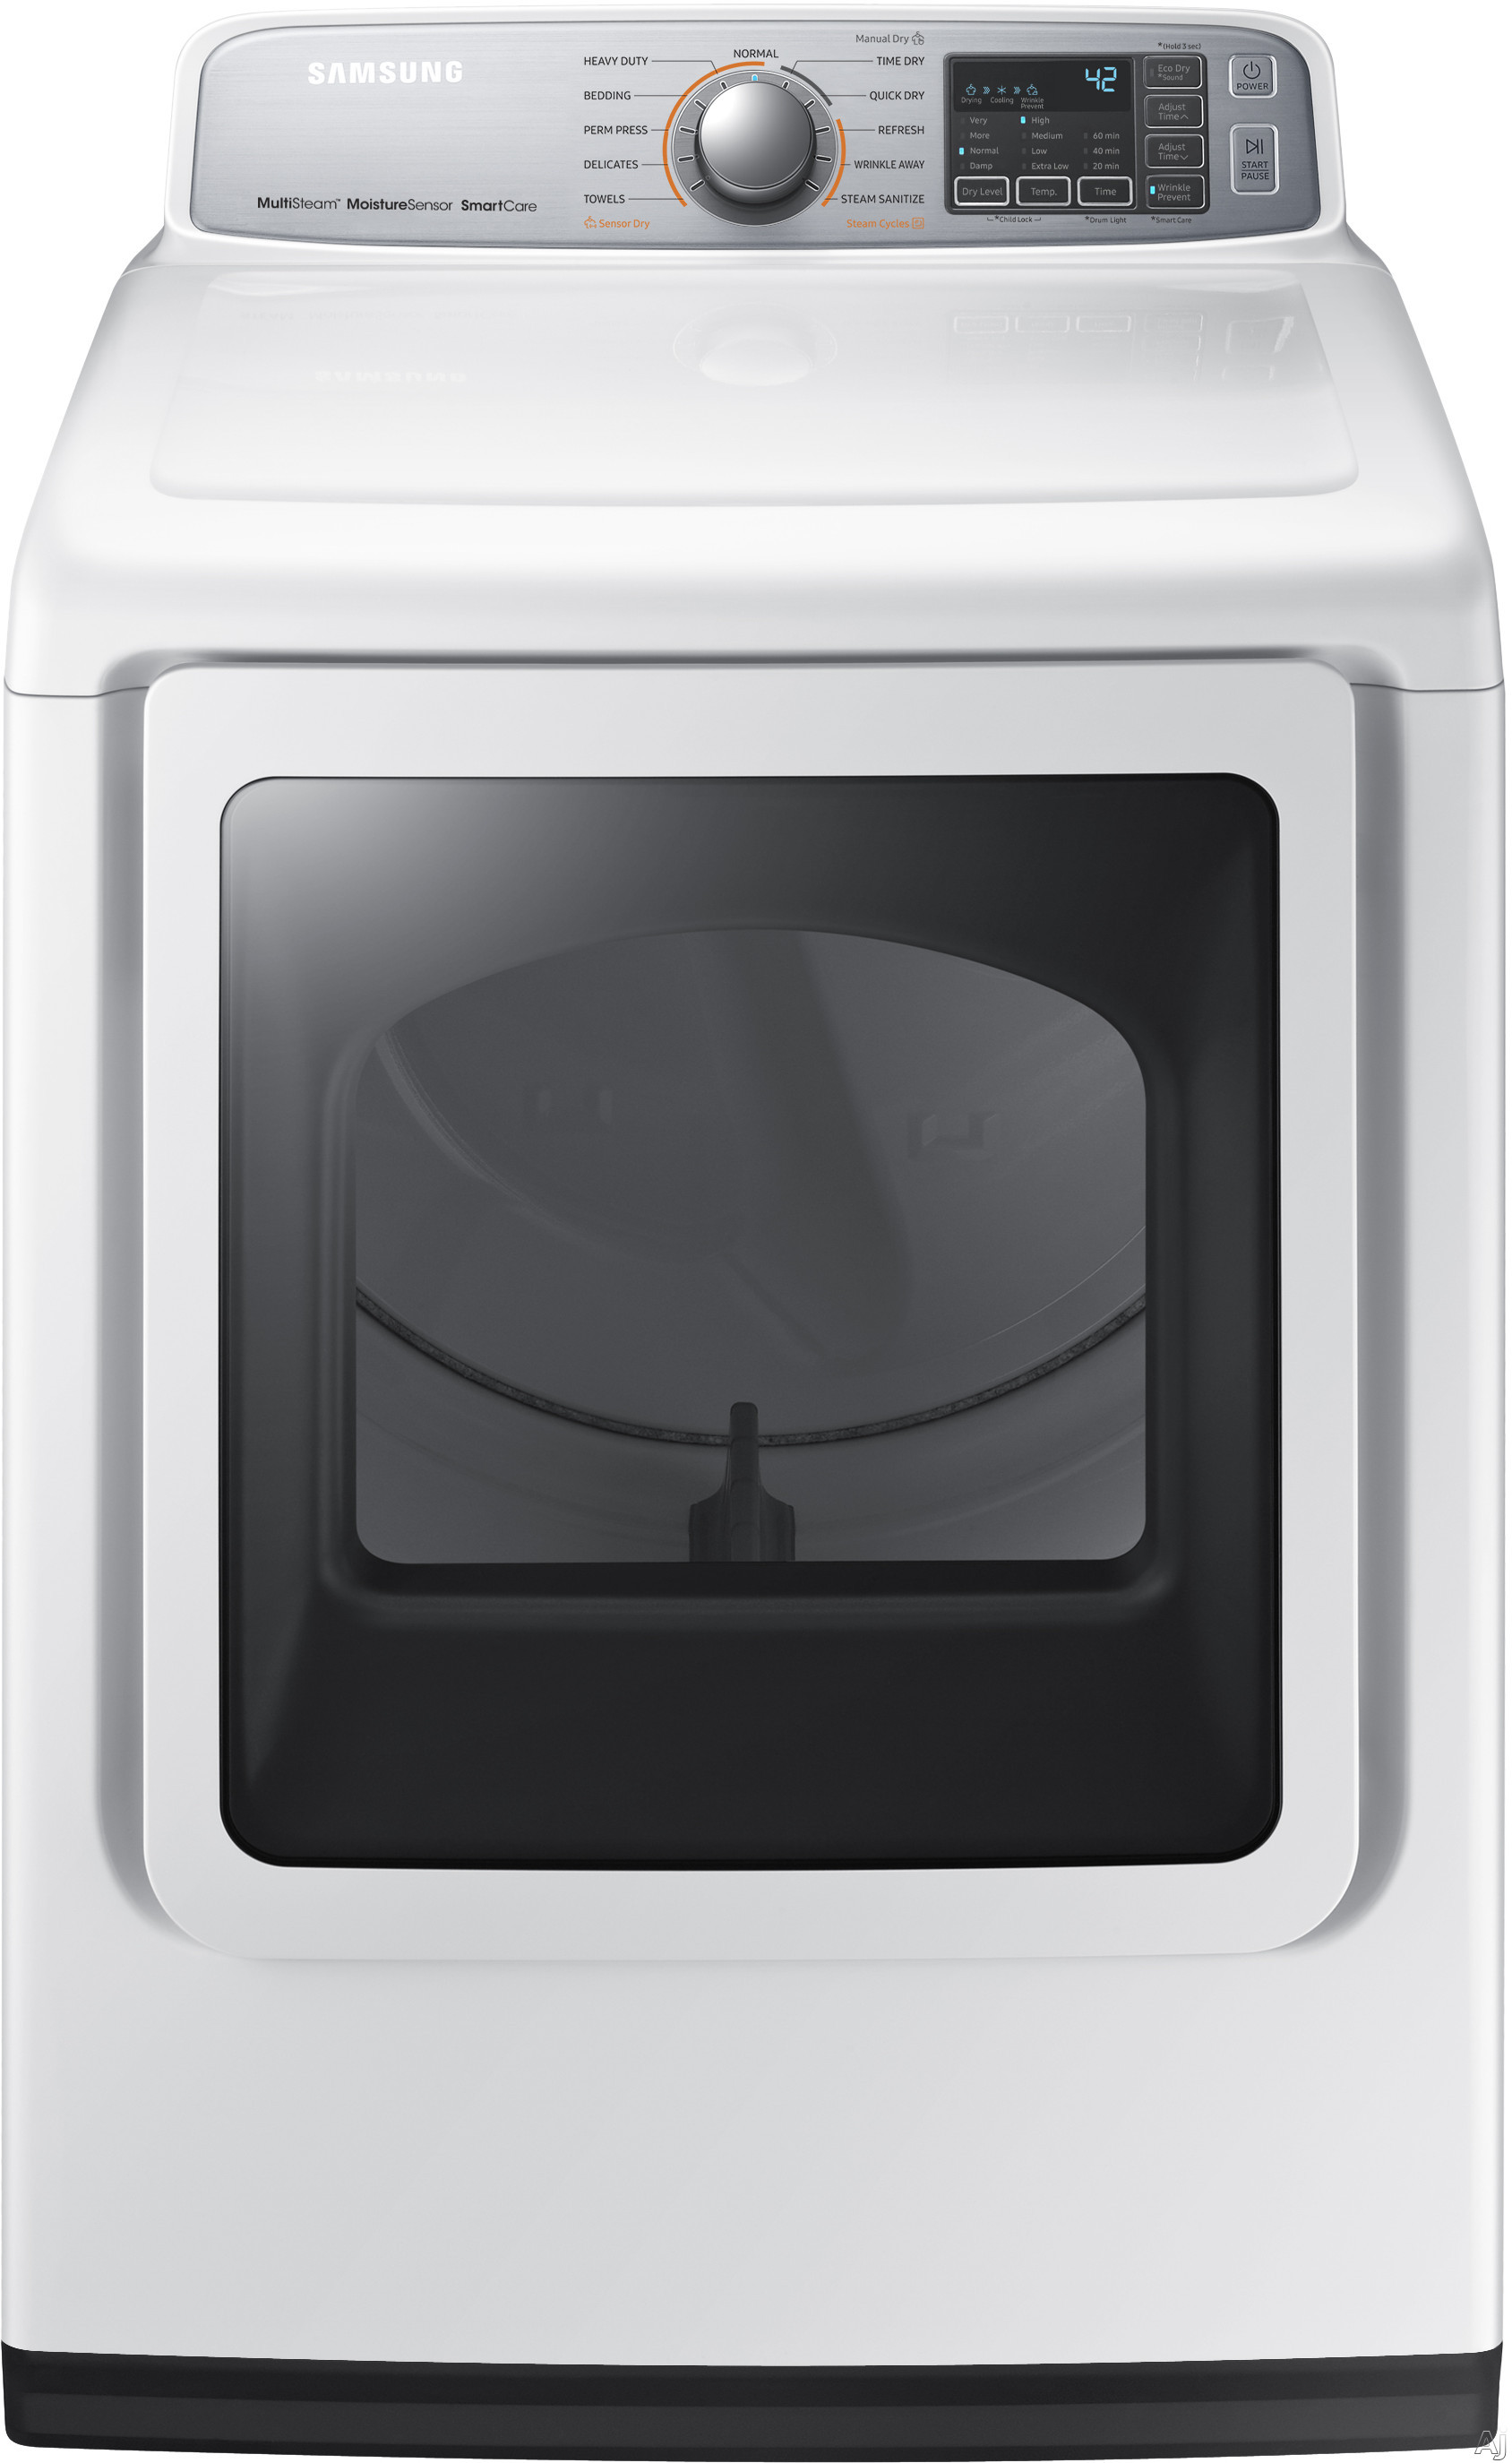 """Image of Samsung DVG50M7450W 27 Inch Gas Dryer with Multi-Steamâ""""¢, Wrinkle Prevent Option, Sensor Dry, 11 Dry Cycles, Smart Care, 4-Way Venting, Interior Drum Light, Eco Dry, Reversible Door and 7.4 cu. ft. Capacity"""